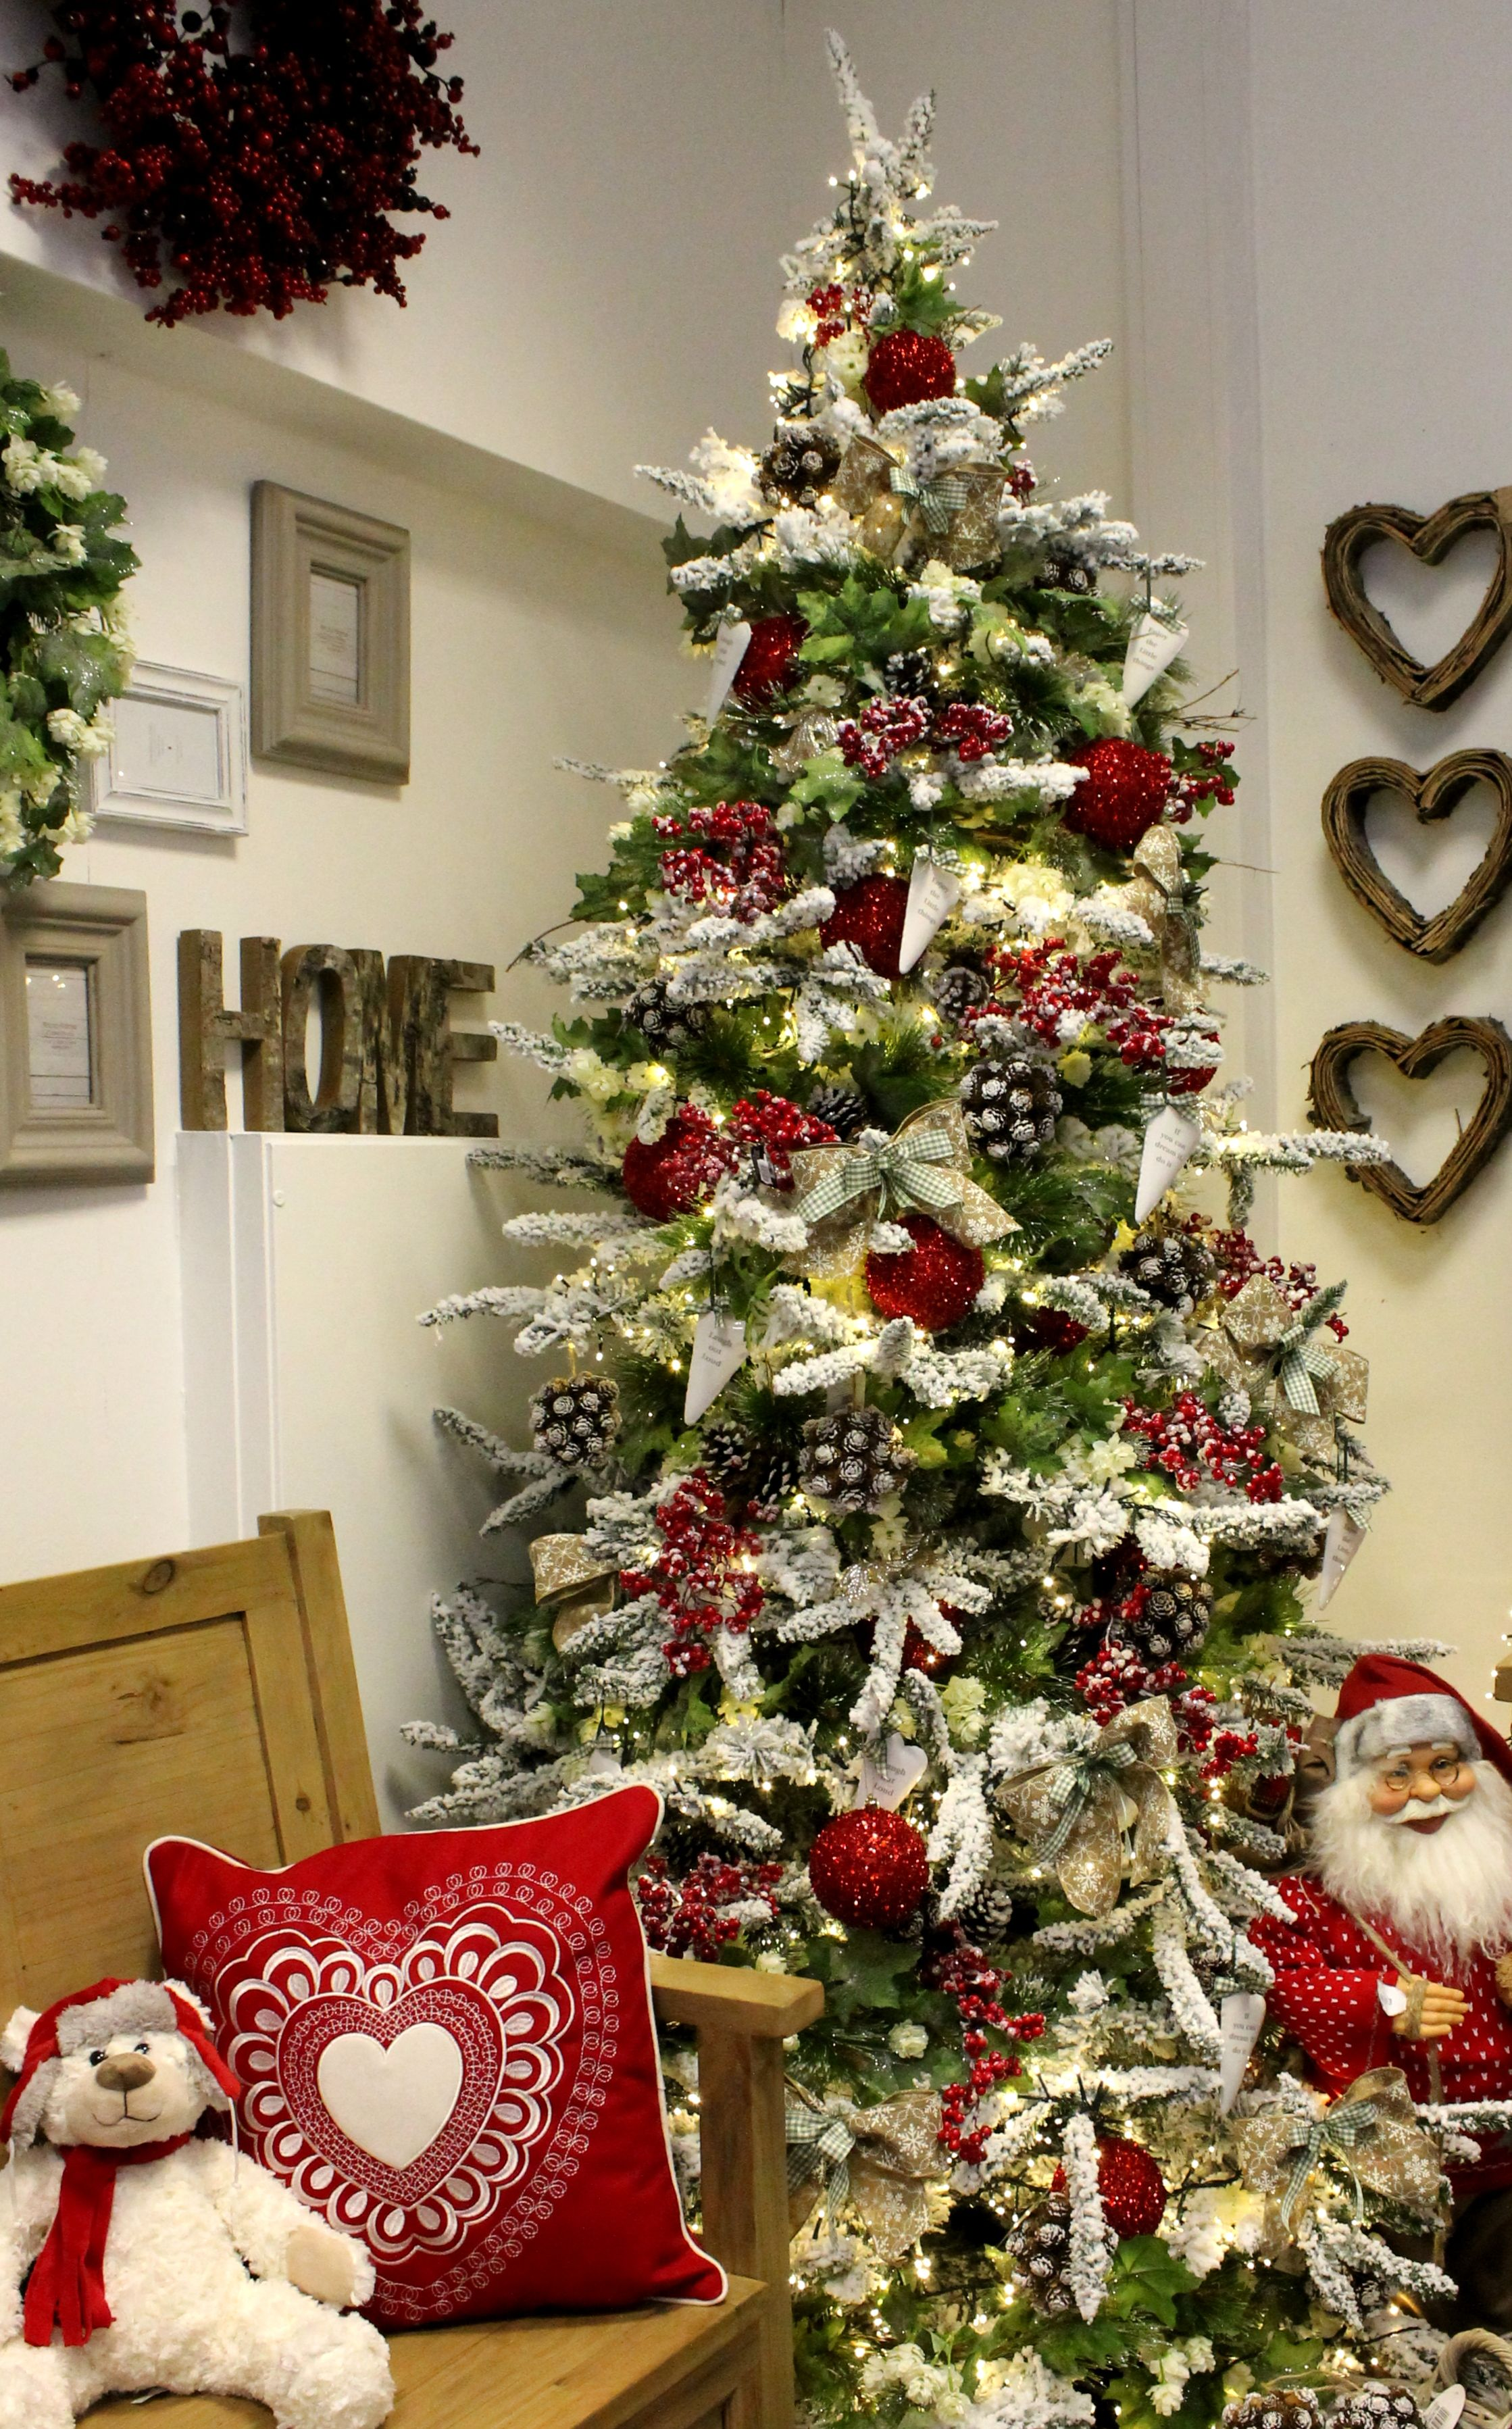 A Red, White and Natural Theme on a Snow Flocked Christmas